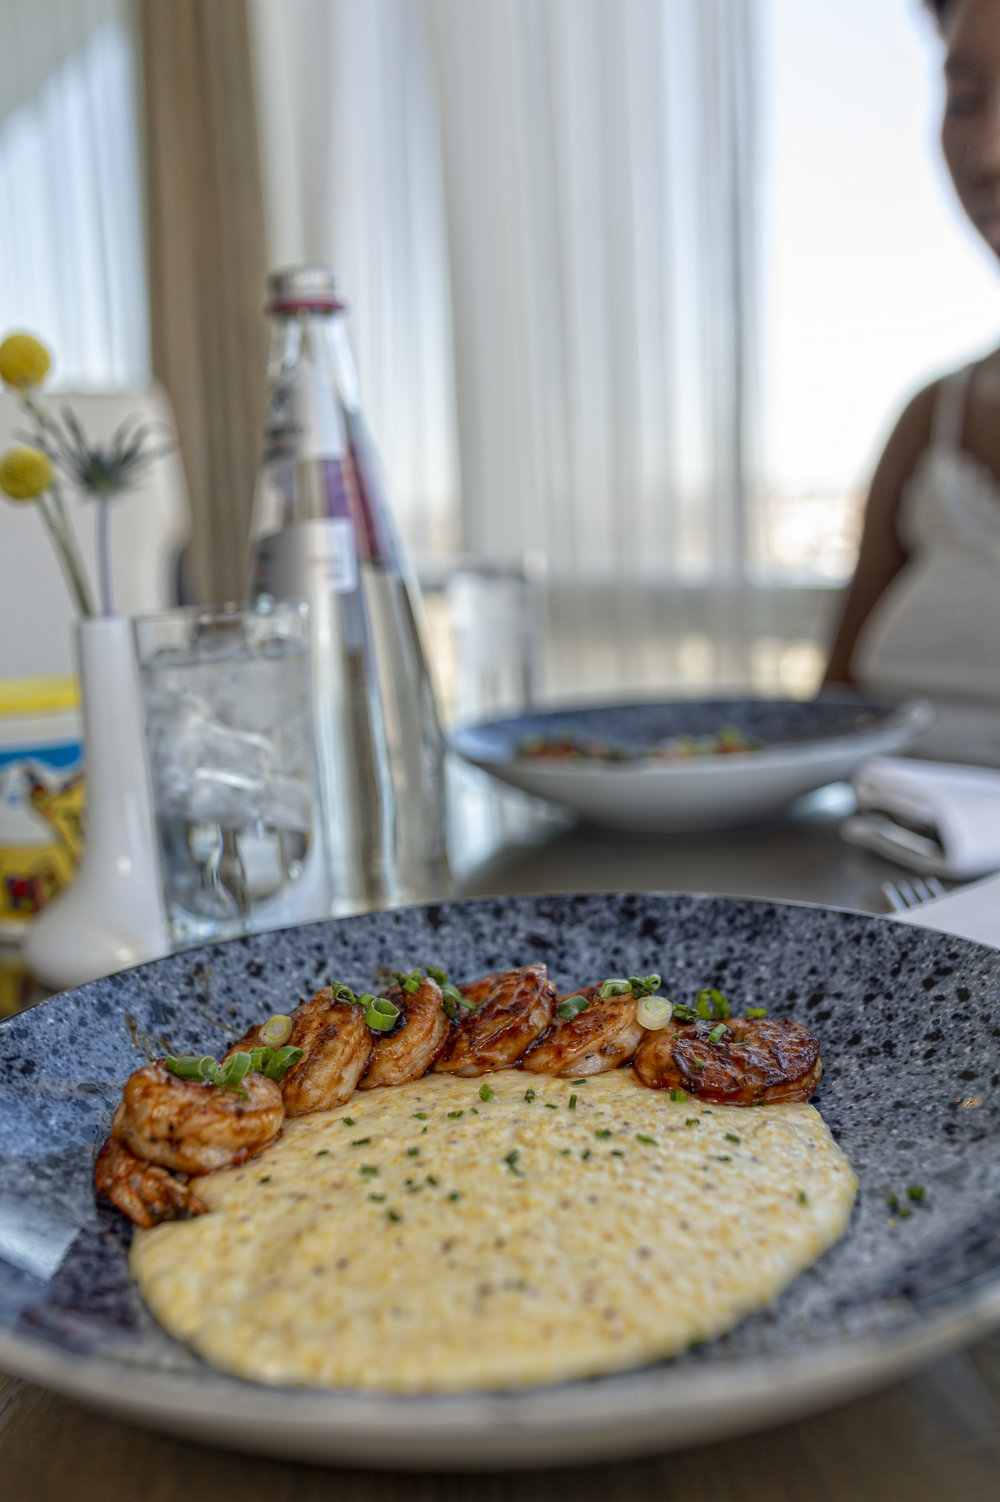 Four-Seasons-Baltimore-Family-Staycation-breakfast-shrimp-and-grits.jpg